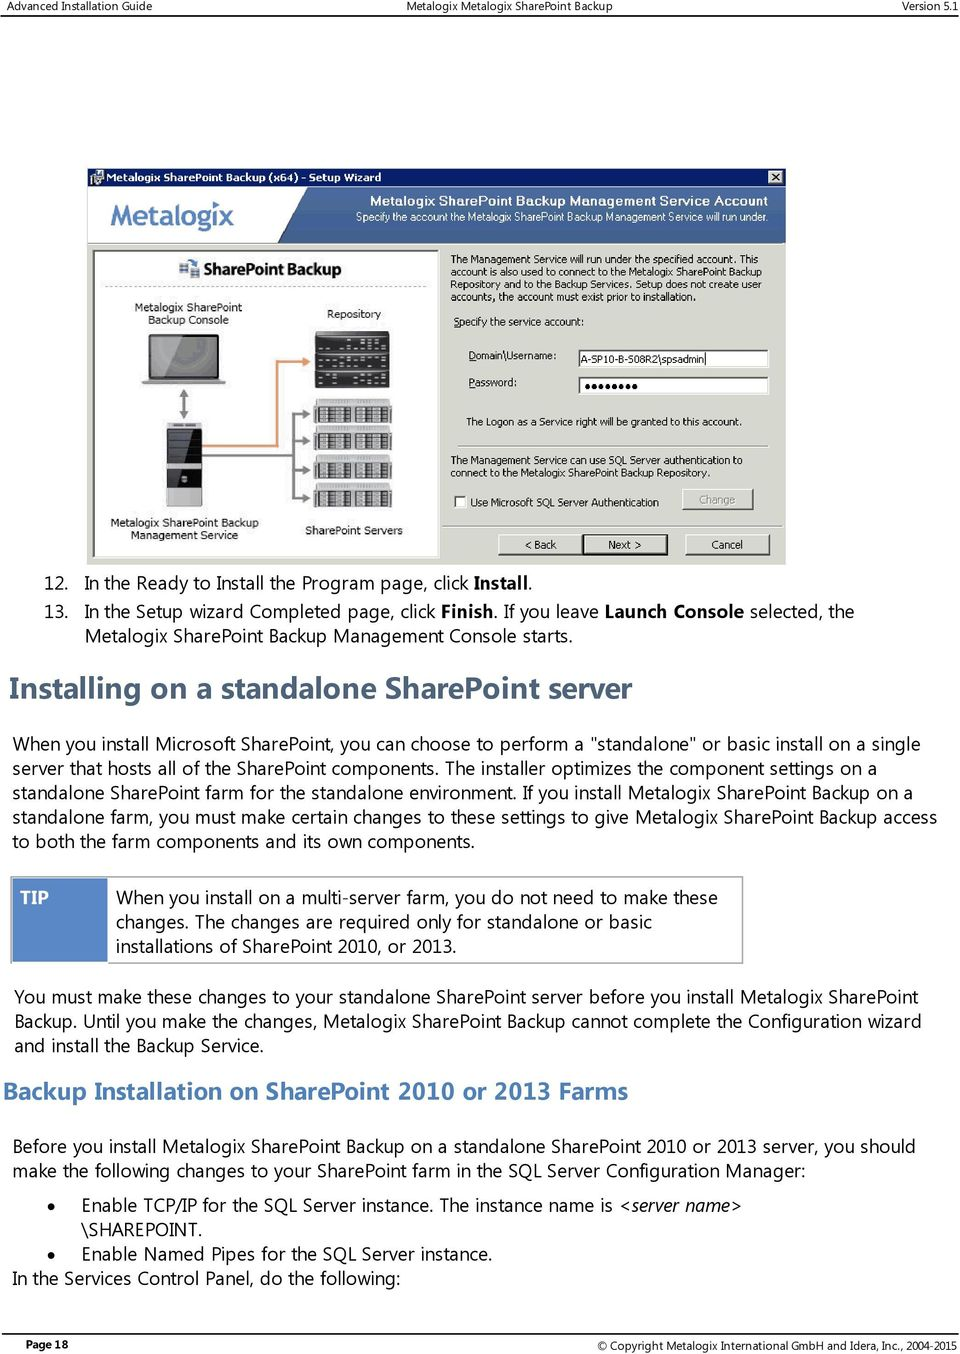 "Installing on a standalone SharePoint server When you install Microsoft SharePoint, you can choose to perform a ""standalone"" or basic install on a single server that hosts all of the SharePoint"